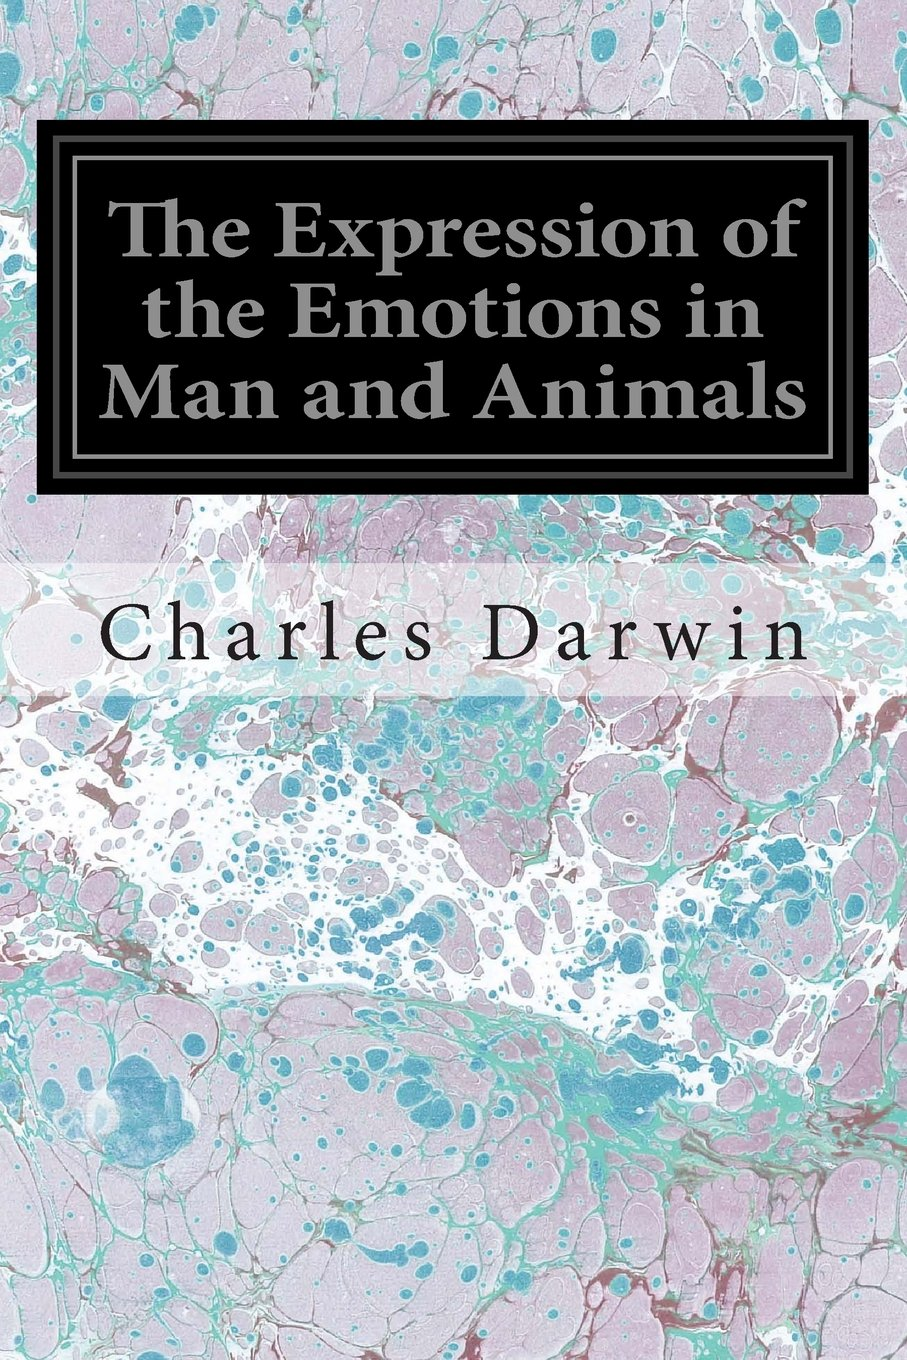 the-expression-of-the-emotions-in-man-and-animals